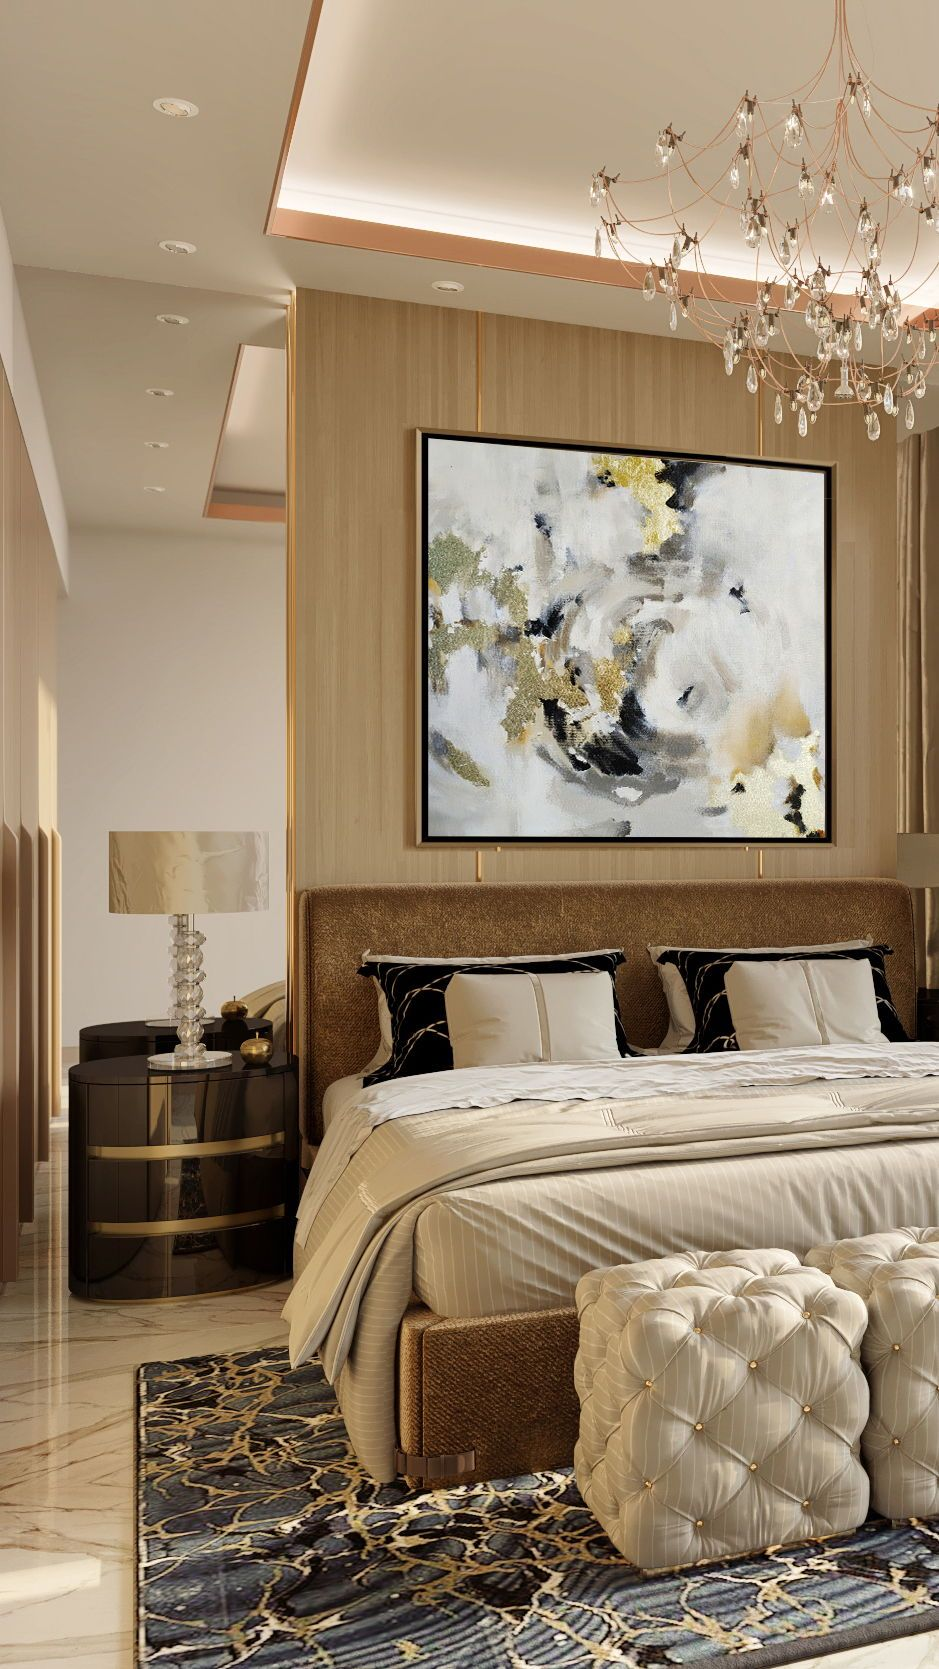 Creative Abstract Art Made Of Artistic Oil Paint For Bedroom Ideas Luxury House Interior Design Small Living Room Furniture Master Bedroom Interior Design